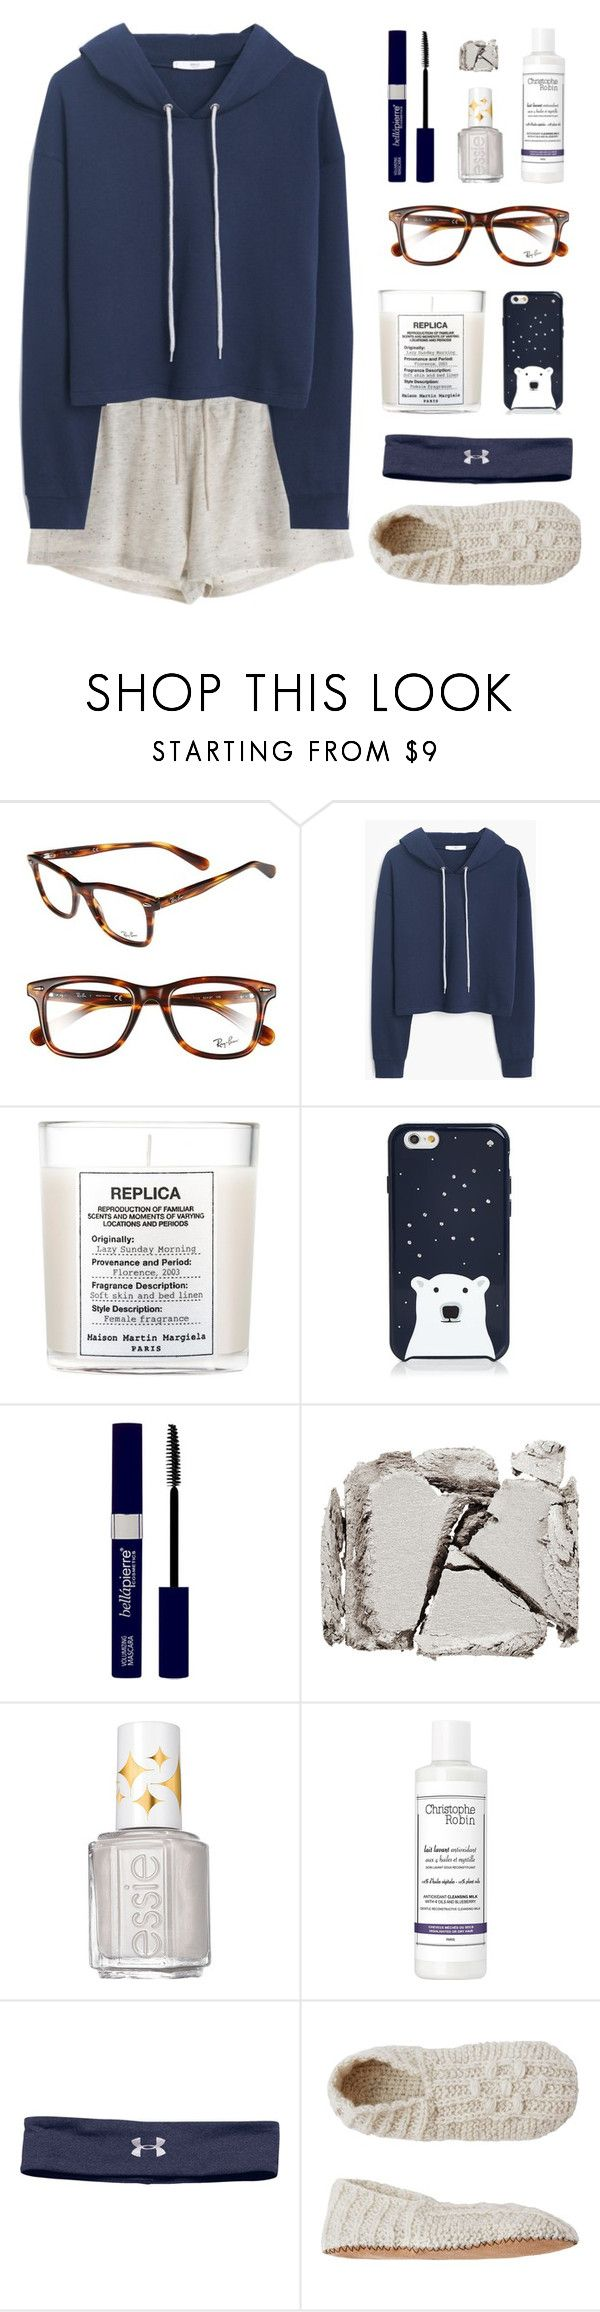 Lazy Day by amazing-abby ❤ liked on Polyvore featuring Ray-Ban, MANGO, Maison Margiela, Kate Spade, Surratt, Essie, Christophe Robin, Under Armour, Toast and womens clothing